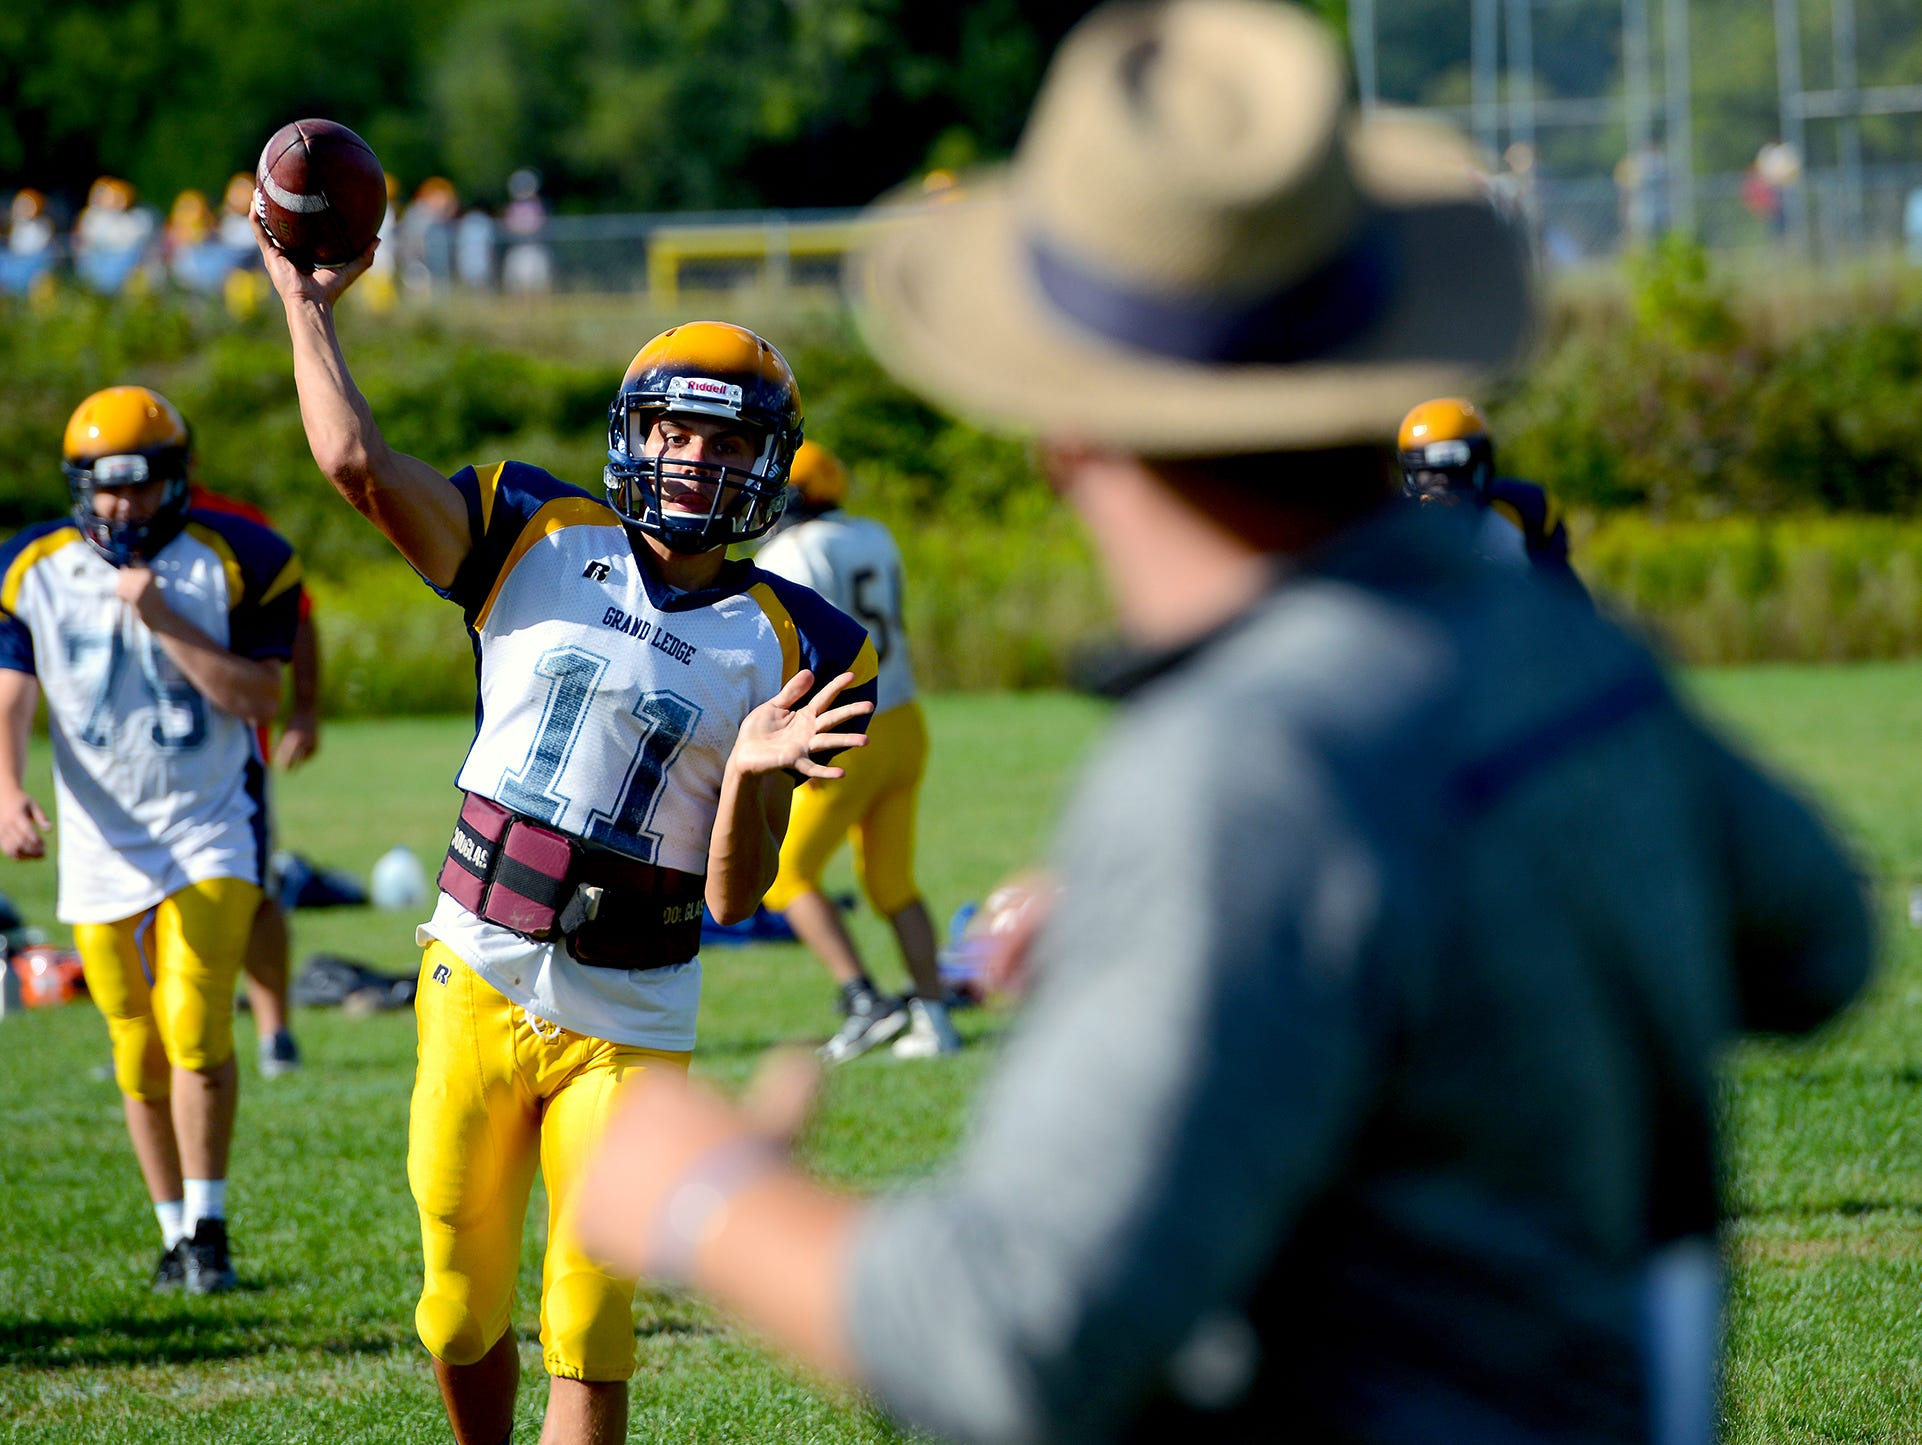 Grand Ledge quarterback back Nolan Bird goes through passing drills working on quick throws and plays with his father, and head coach Matt, at practice Monday.